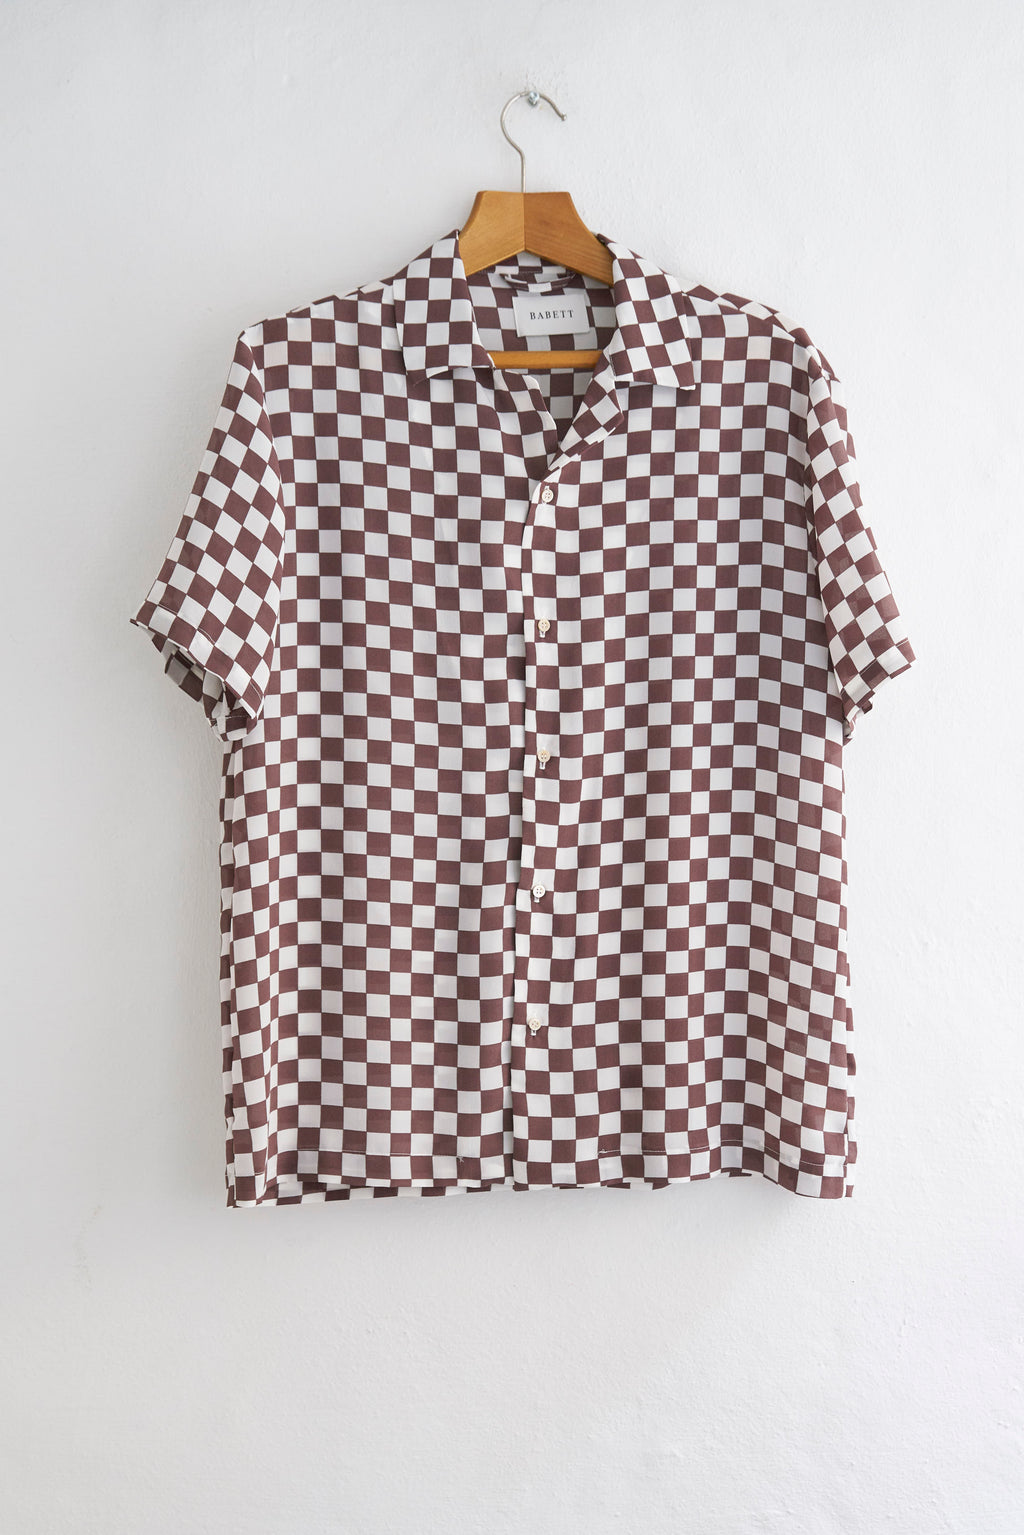 CHESS DARK BROWN SHIRT